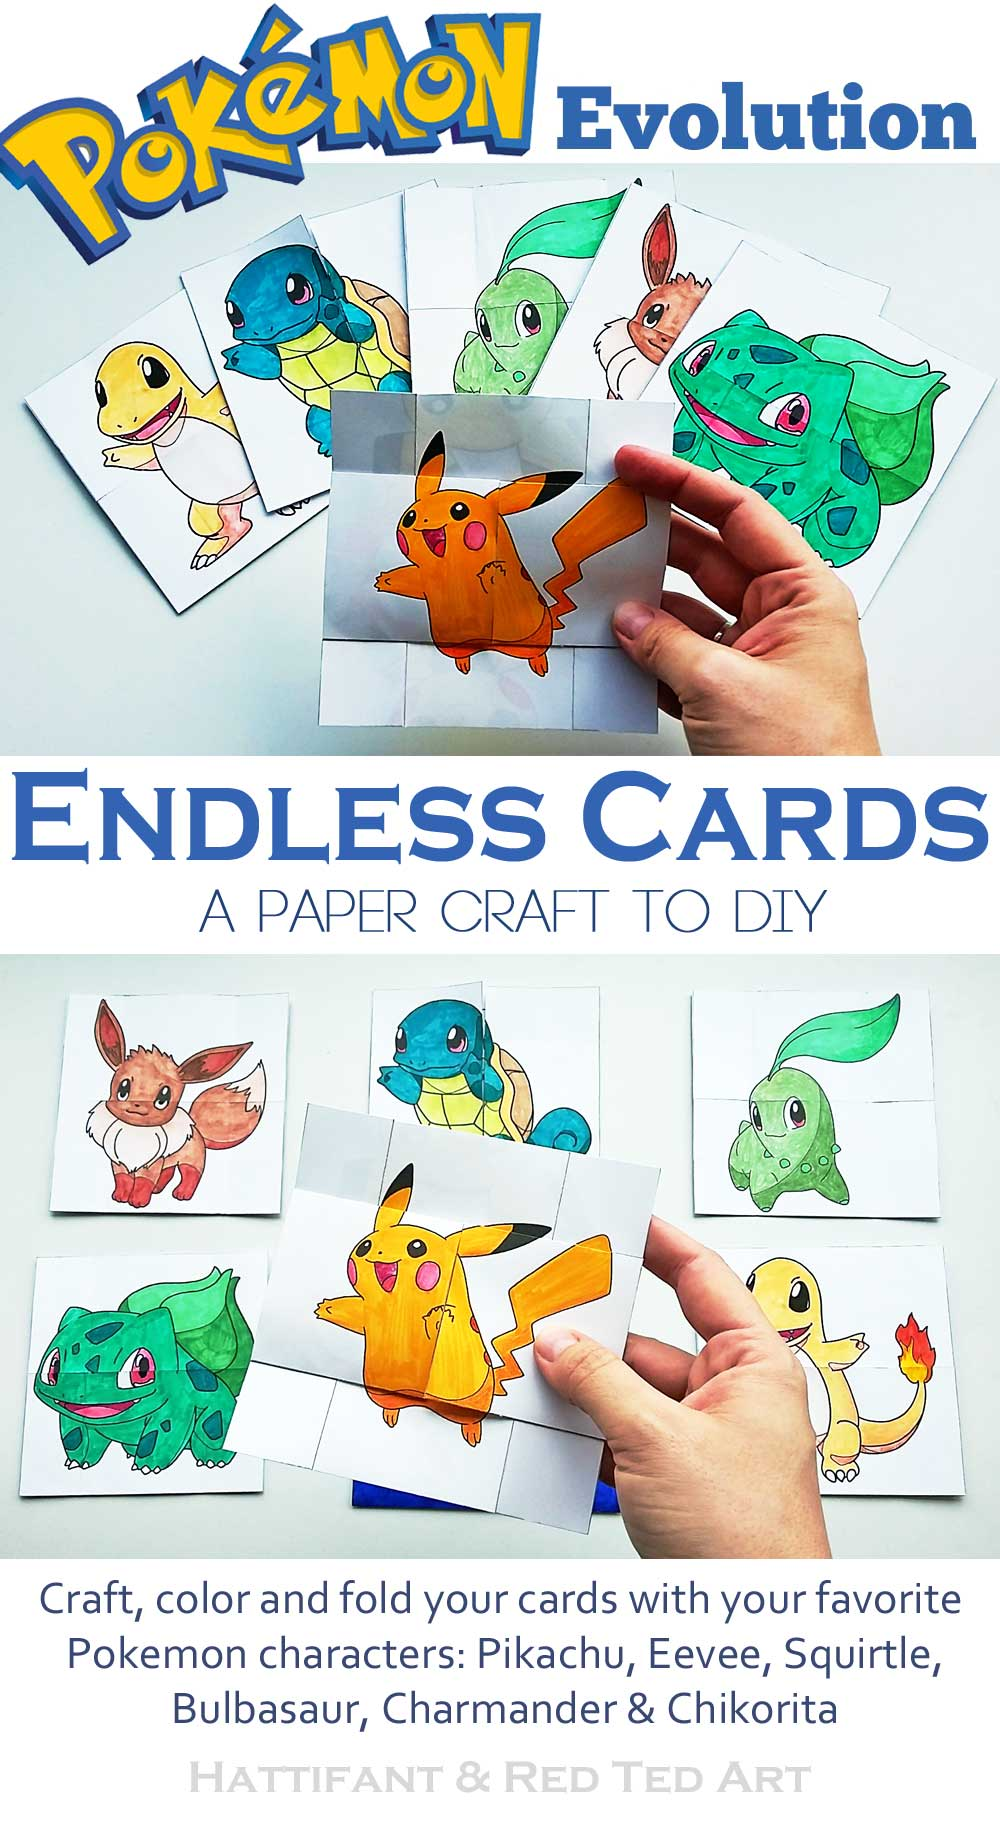 Hattifant pokemon evolution endless neverending cards papercraft